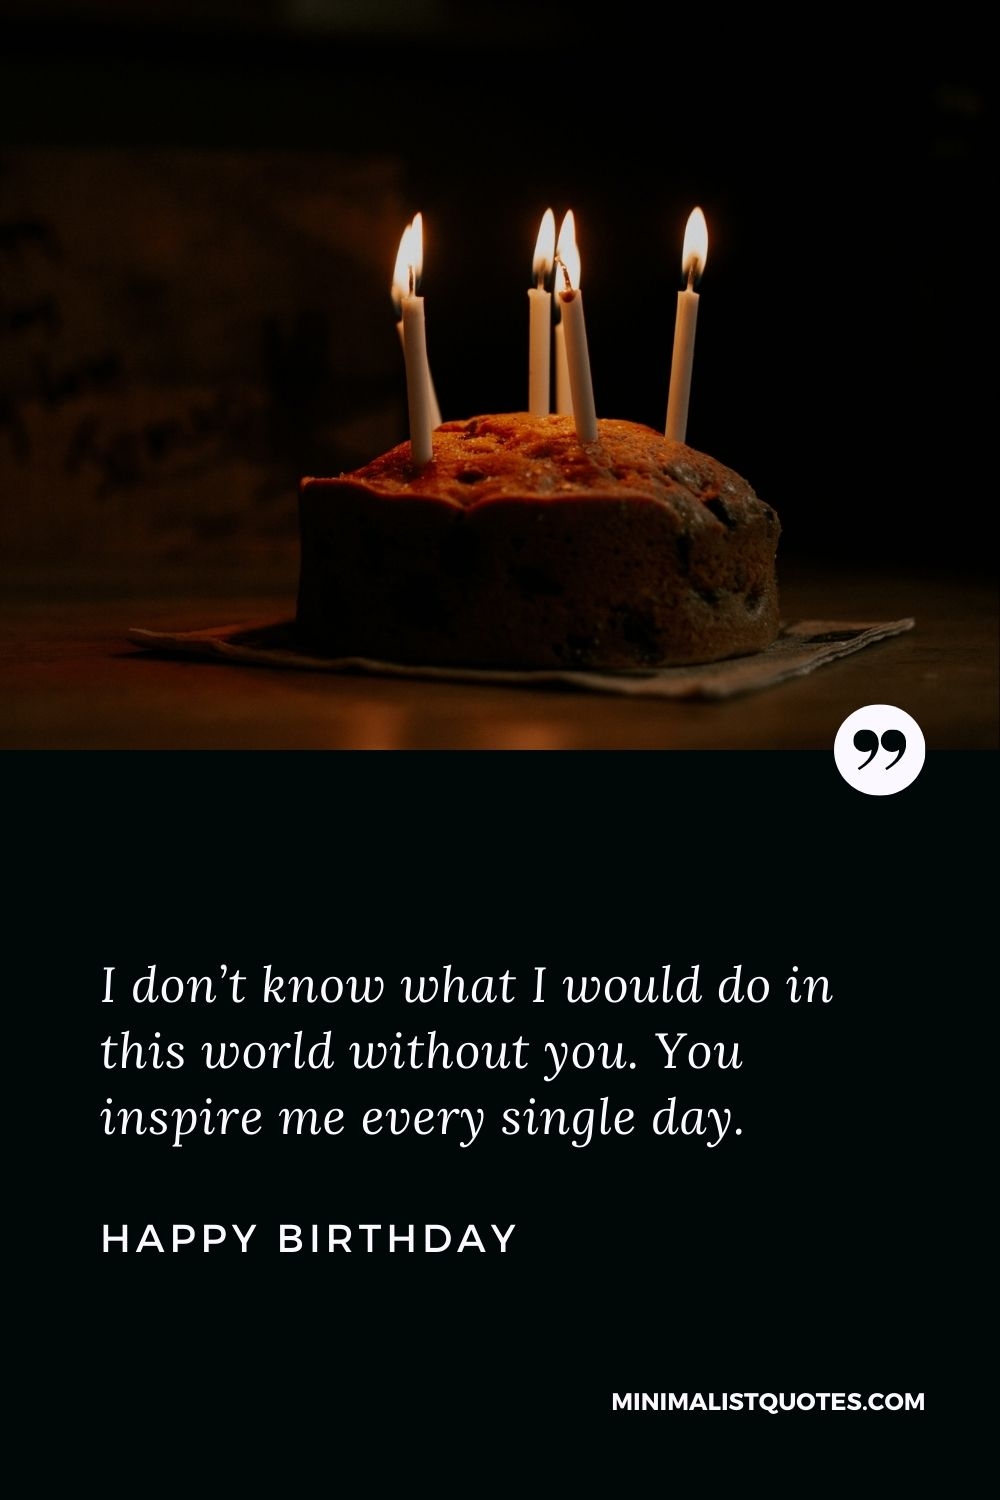 Birthday wish, message & quote with HD image: I don't know what I would do in this world without you. You inspire me every single day. Happy Birthday!